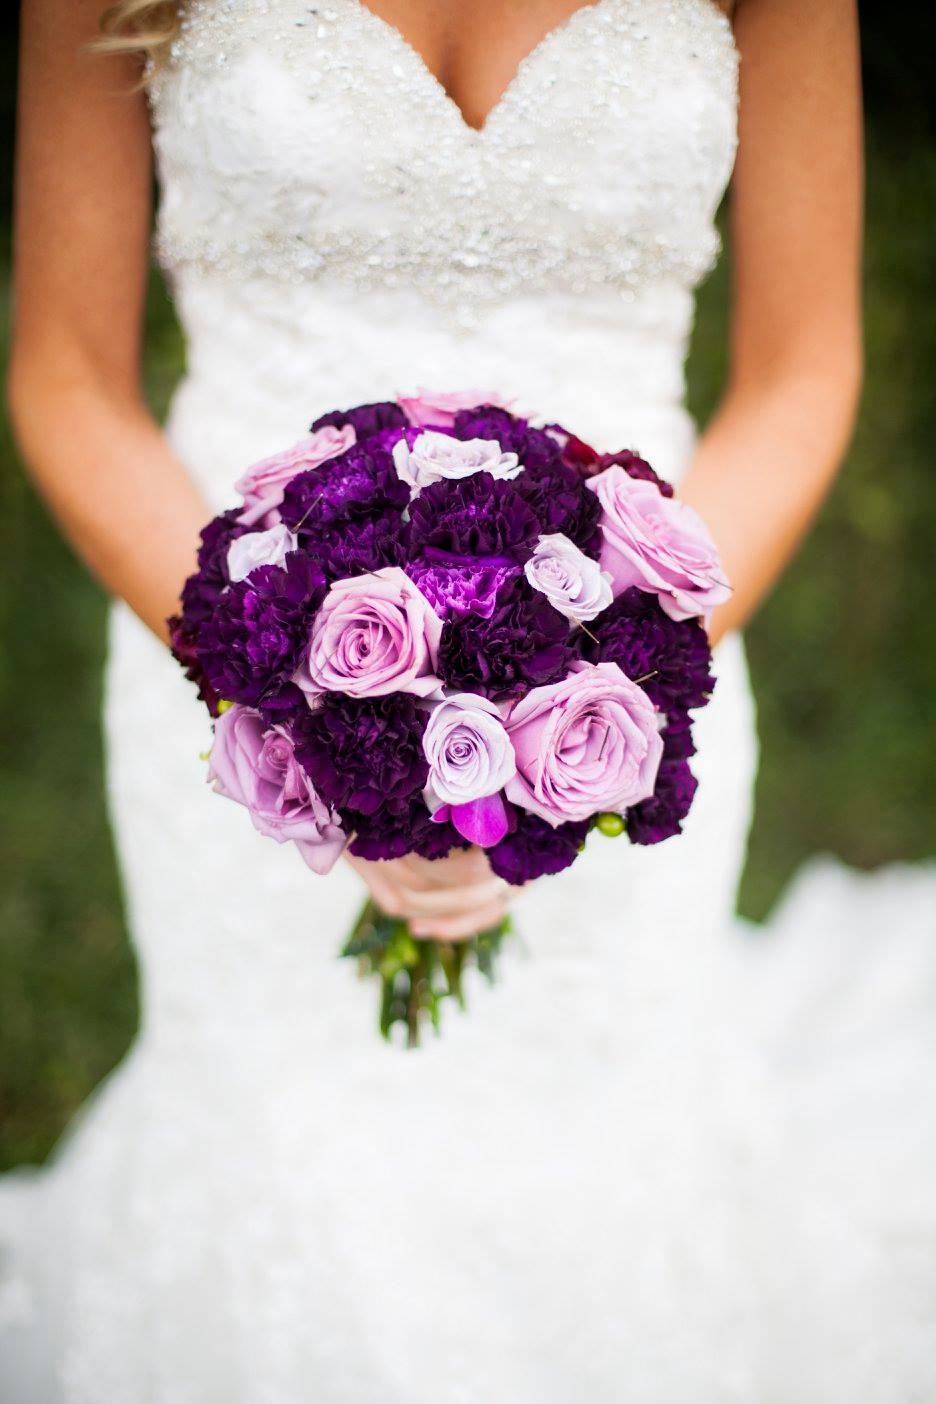 Magen_Kirk_Bride_Bouquet_Simply_Yours_Weddings_Flowers_Freestone_Photography.jpeg